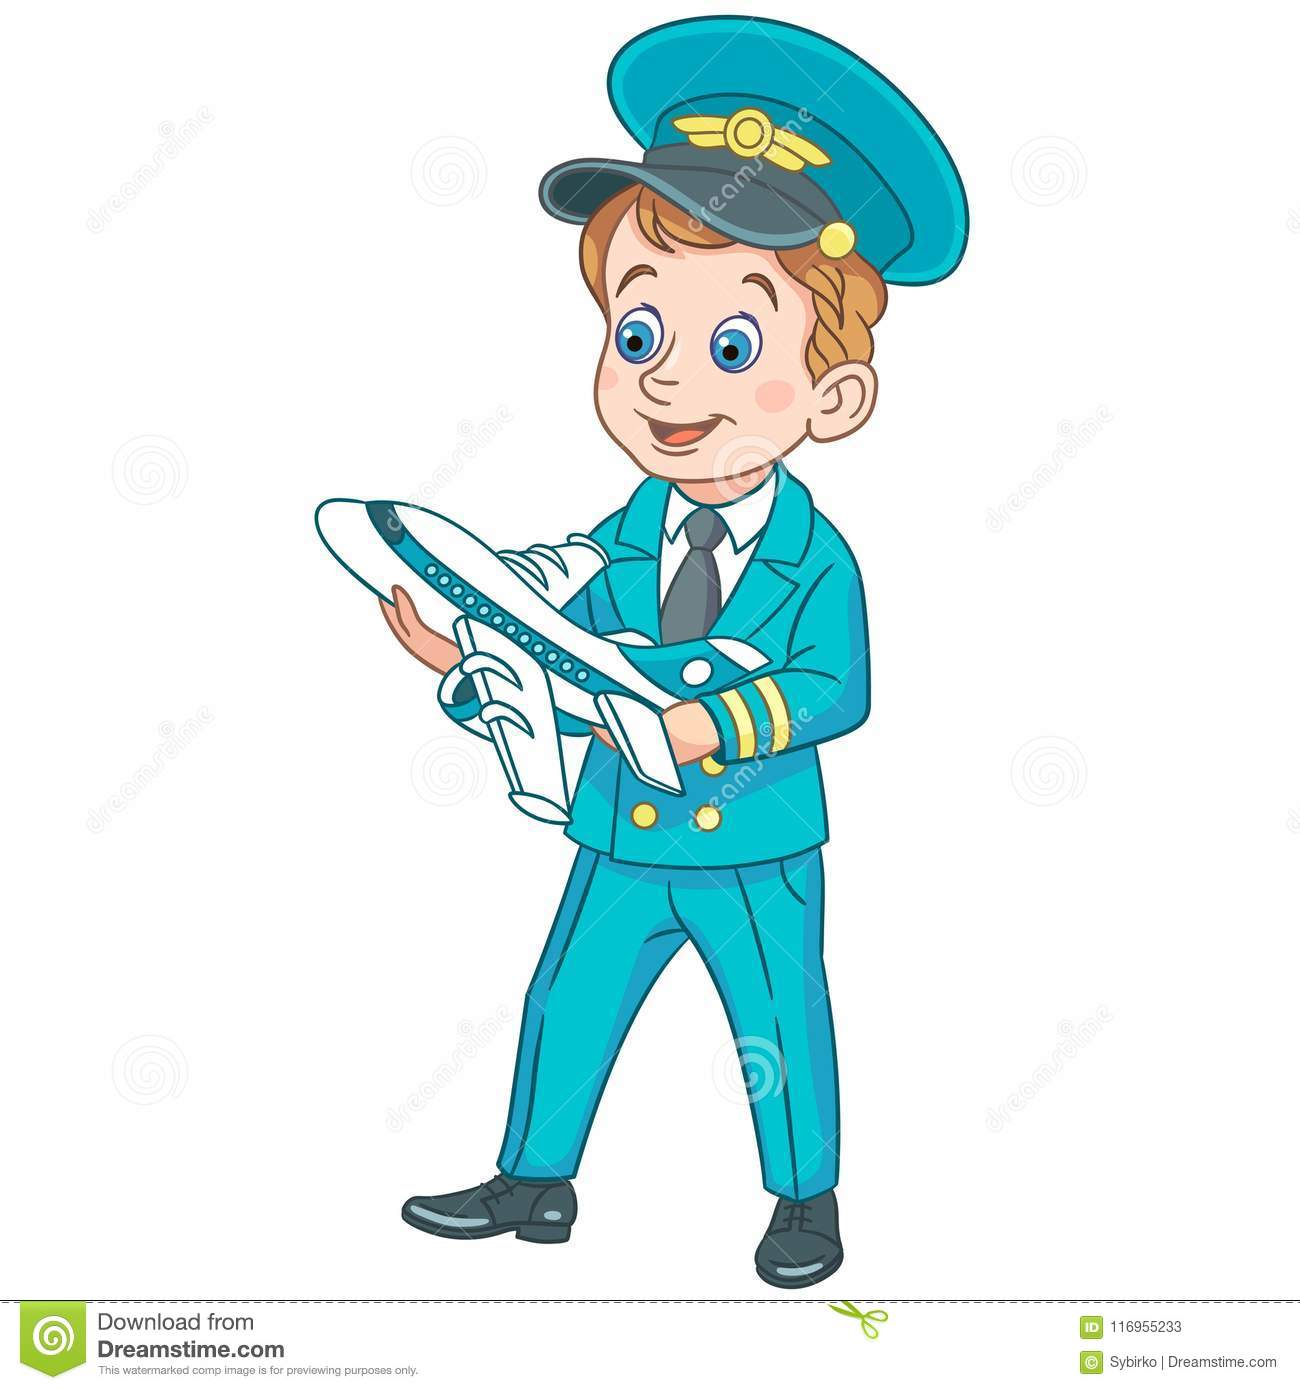 Cartoon Airplane Pilot With Toy Plane Stock Vector